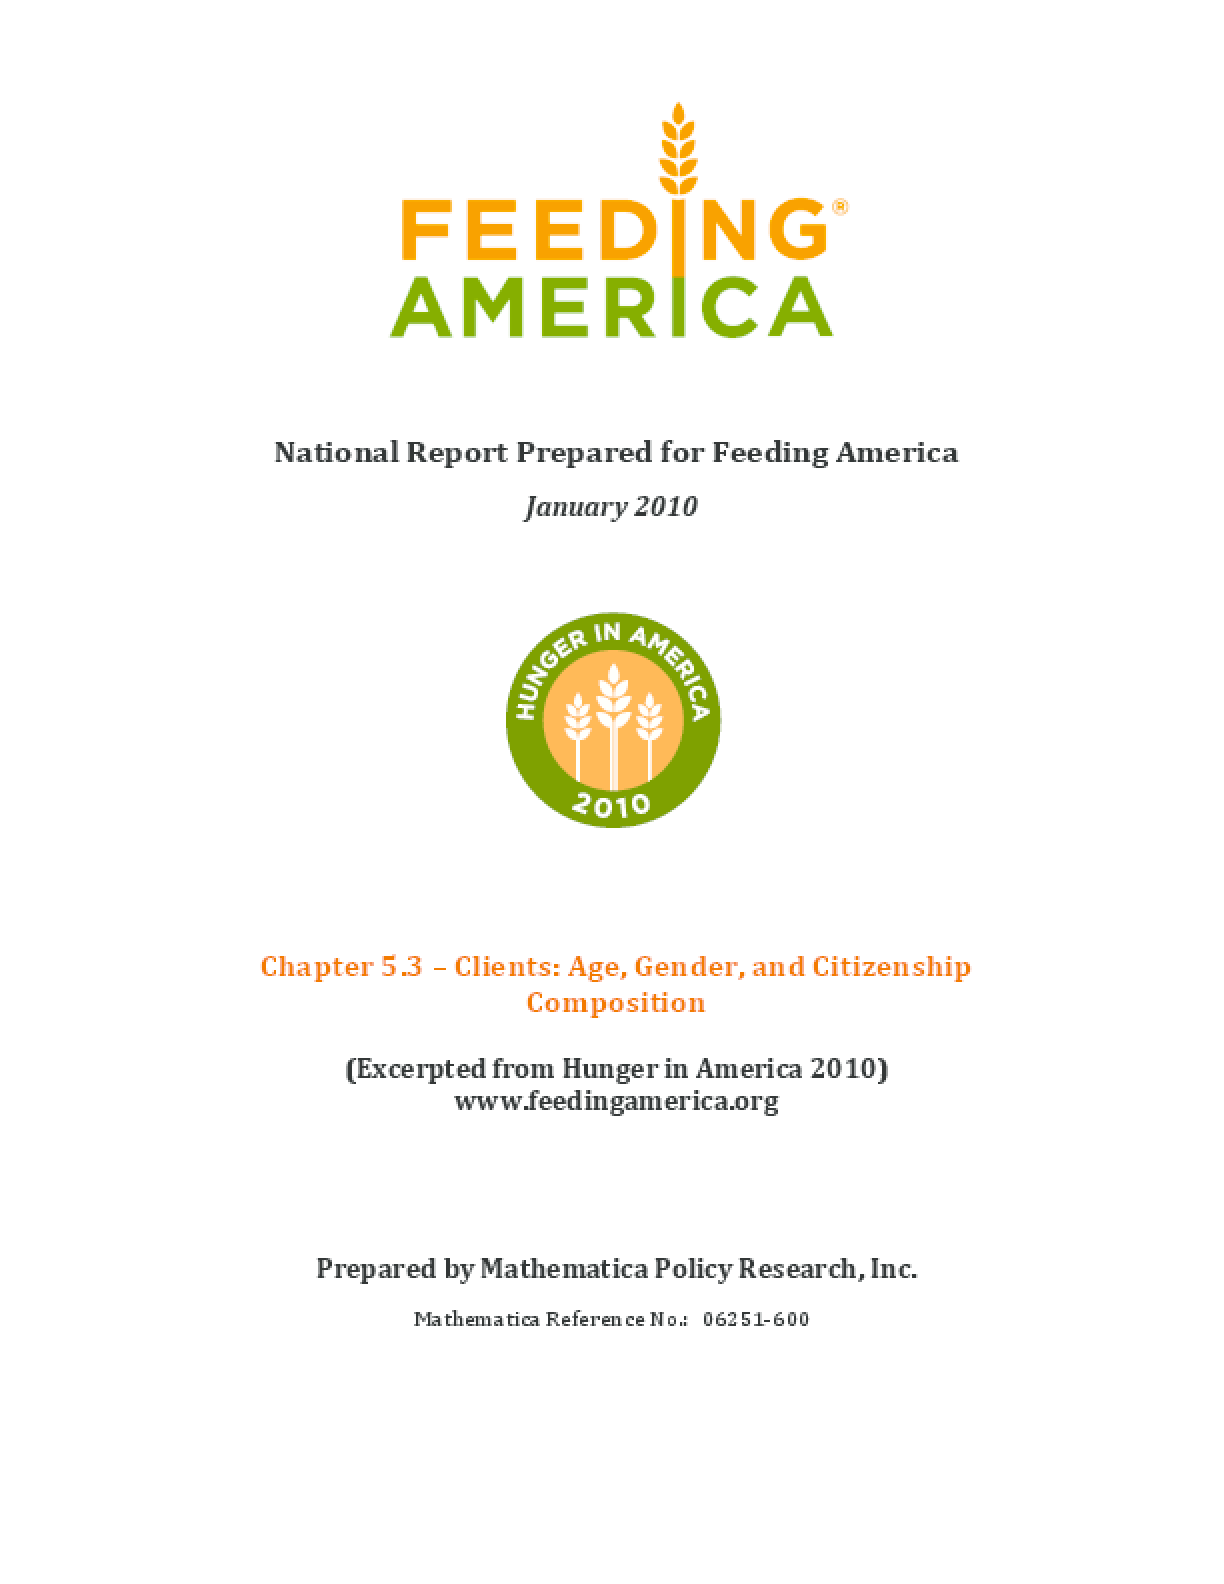 Feeding America Client Demographics: Age, Gender, and Citizenship Composition